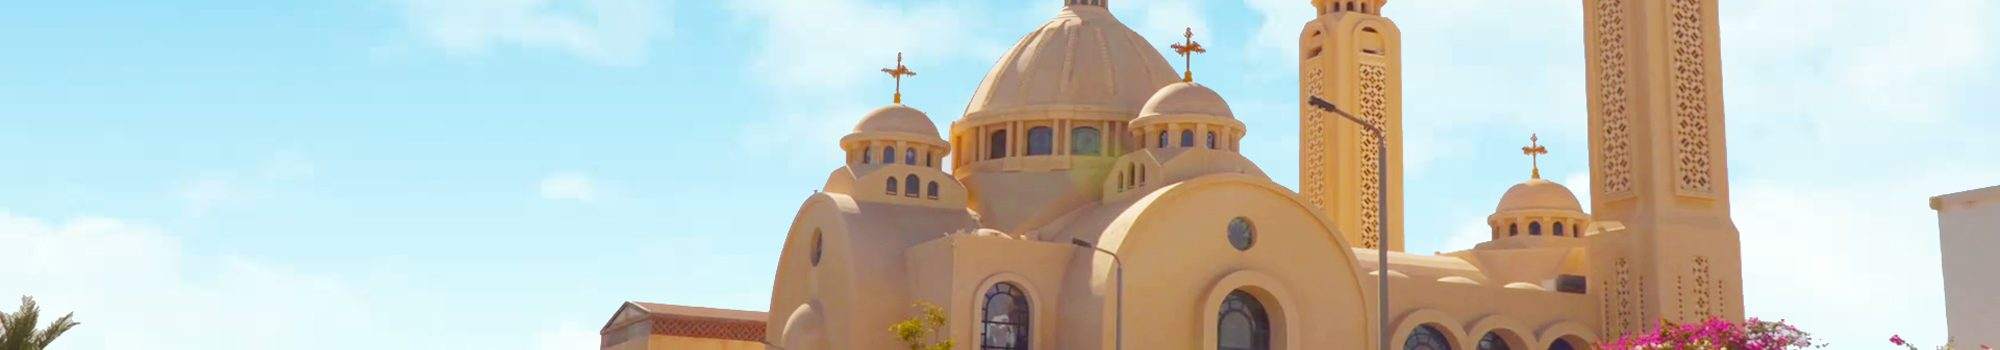 Egypt Coptic Churches